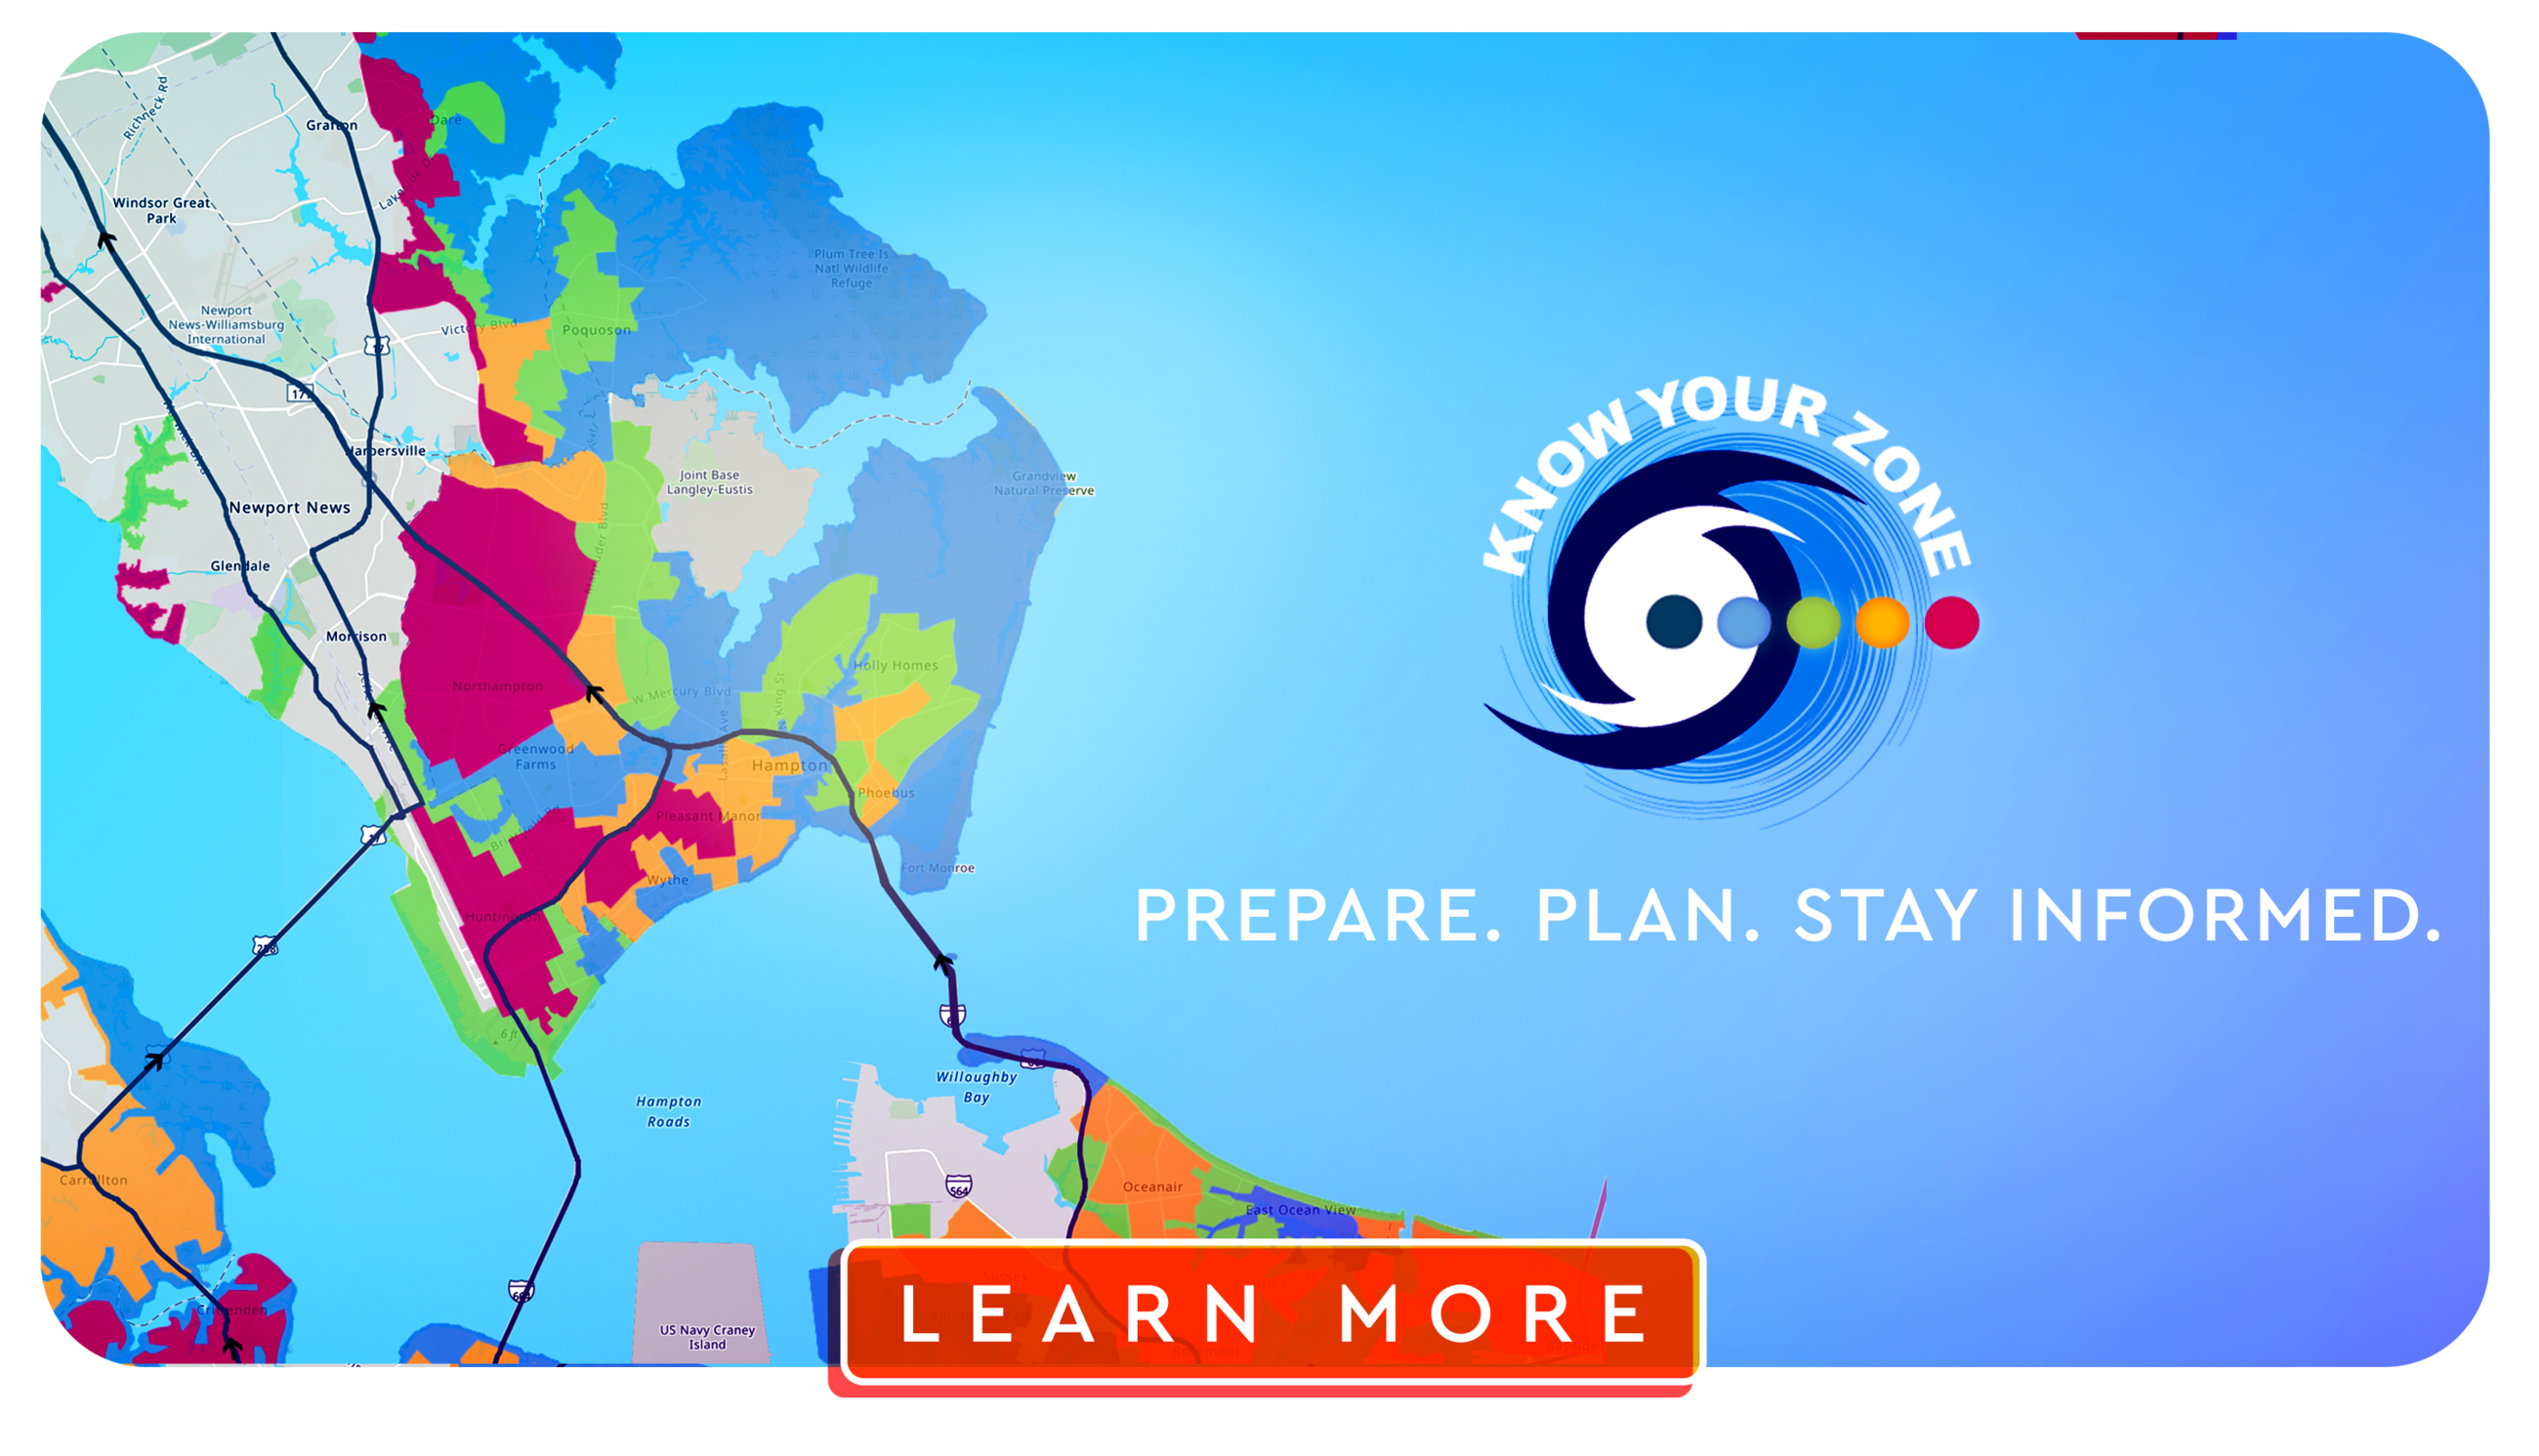 Know Your Zone web ad